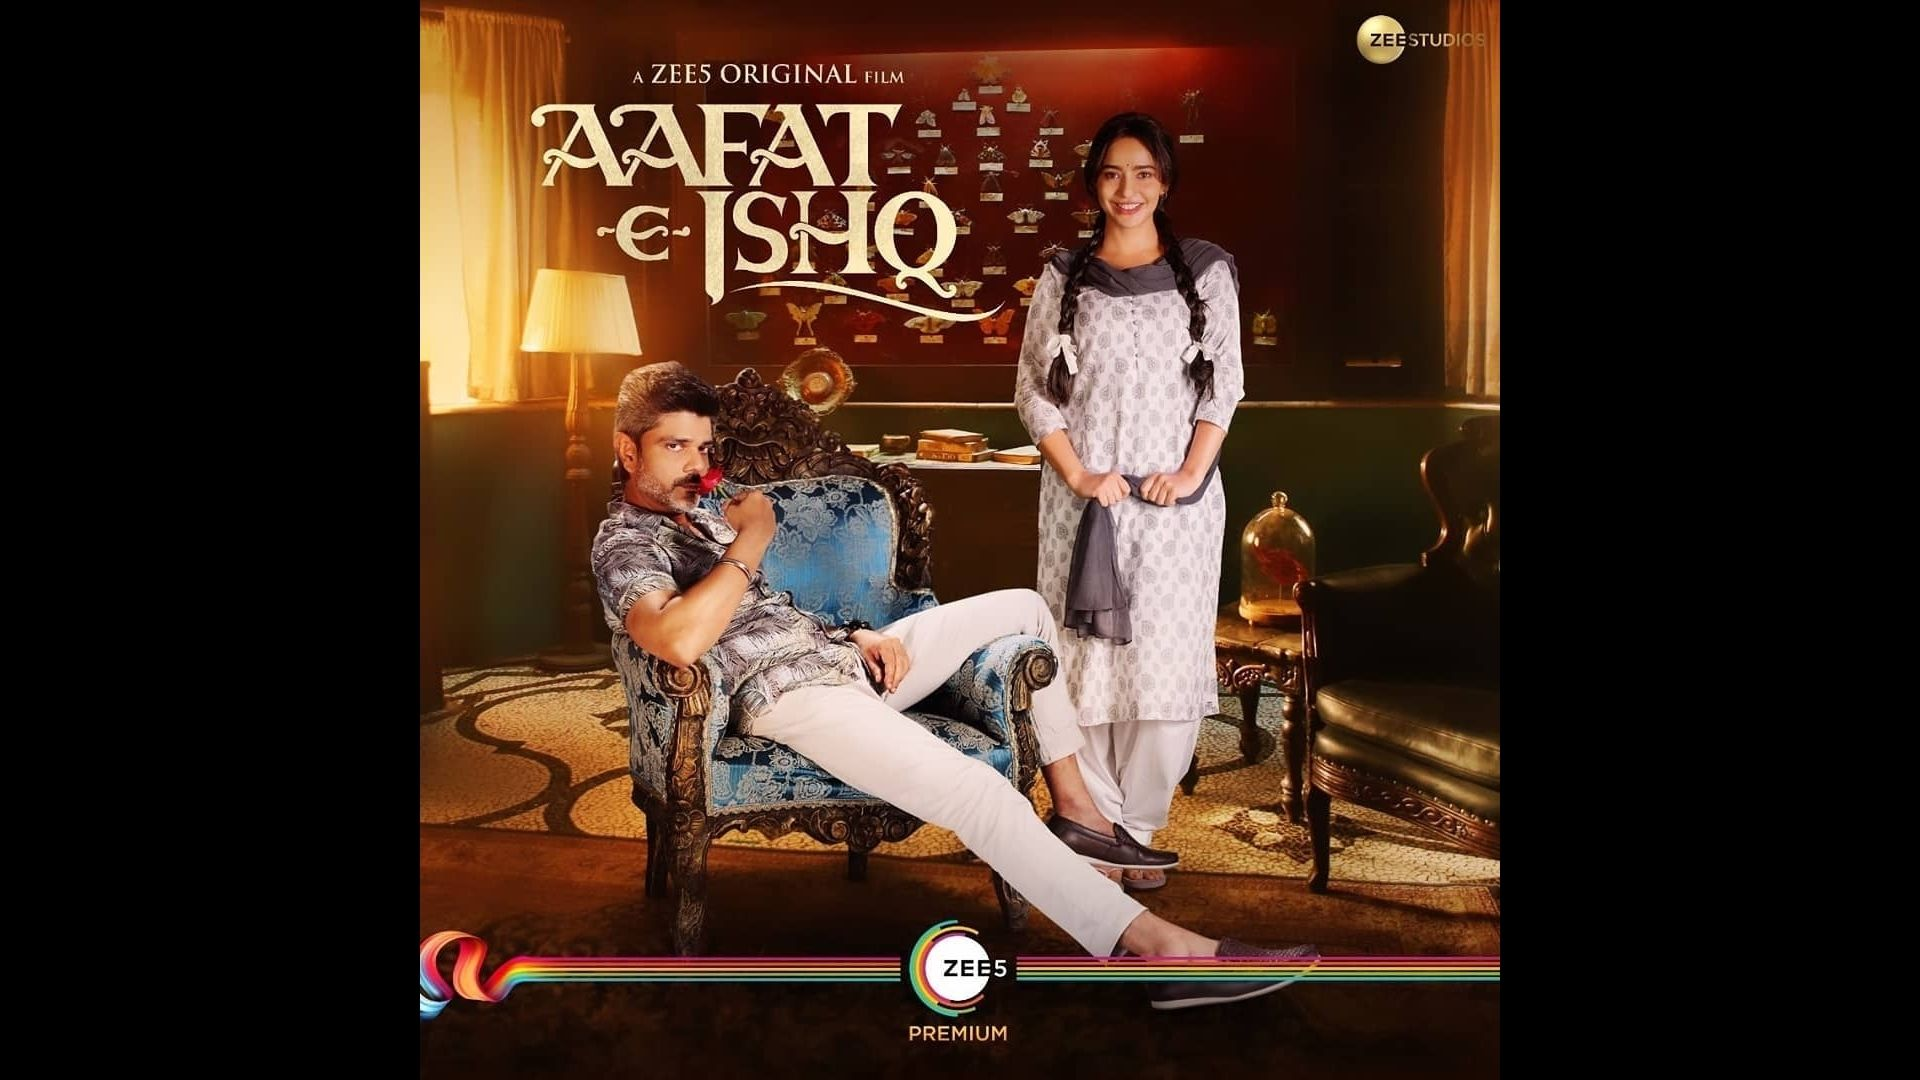 Aafat-E-Ishq Trailer: Neha Sharma, Namit Das Will Leave You In A Frenzy With Their Performances